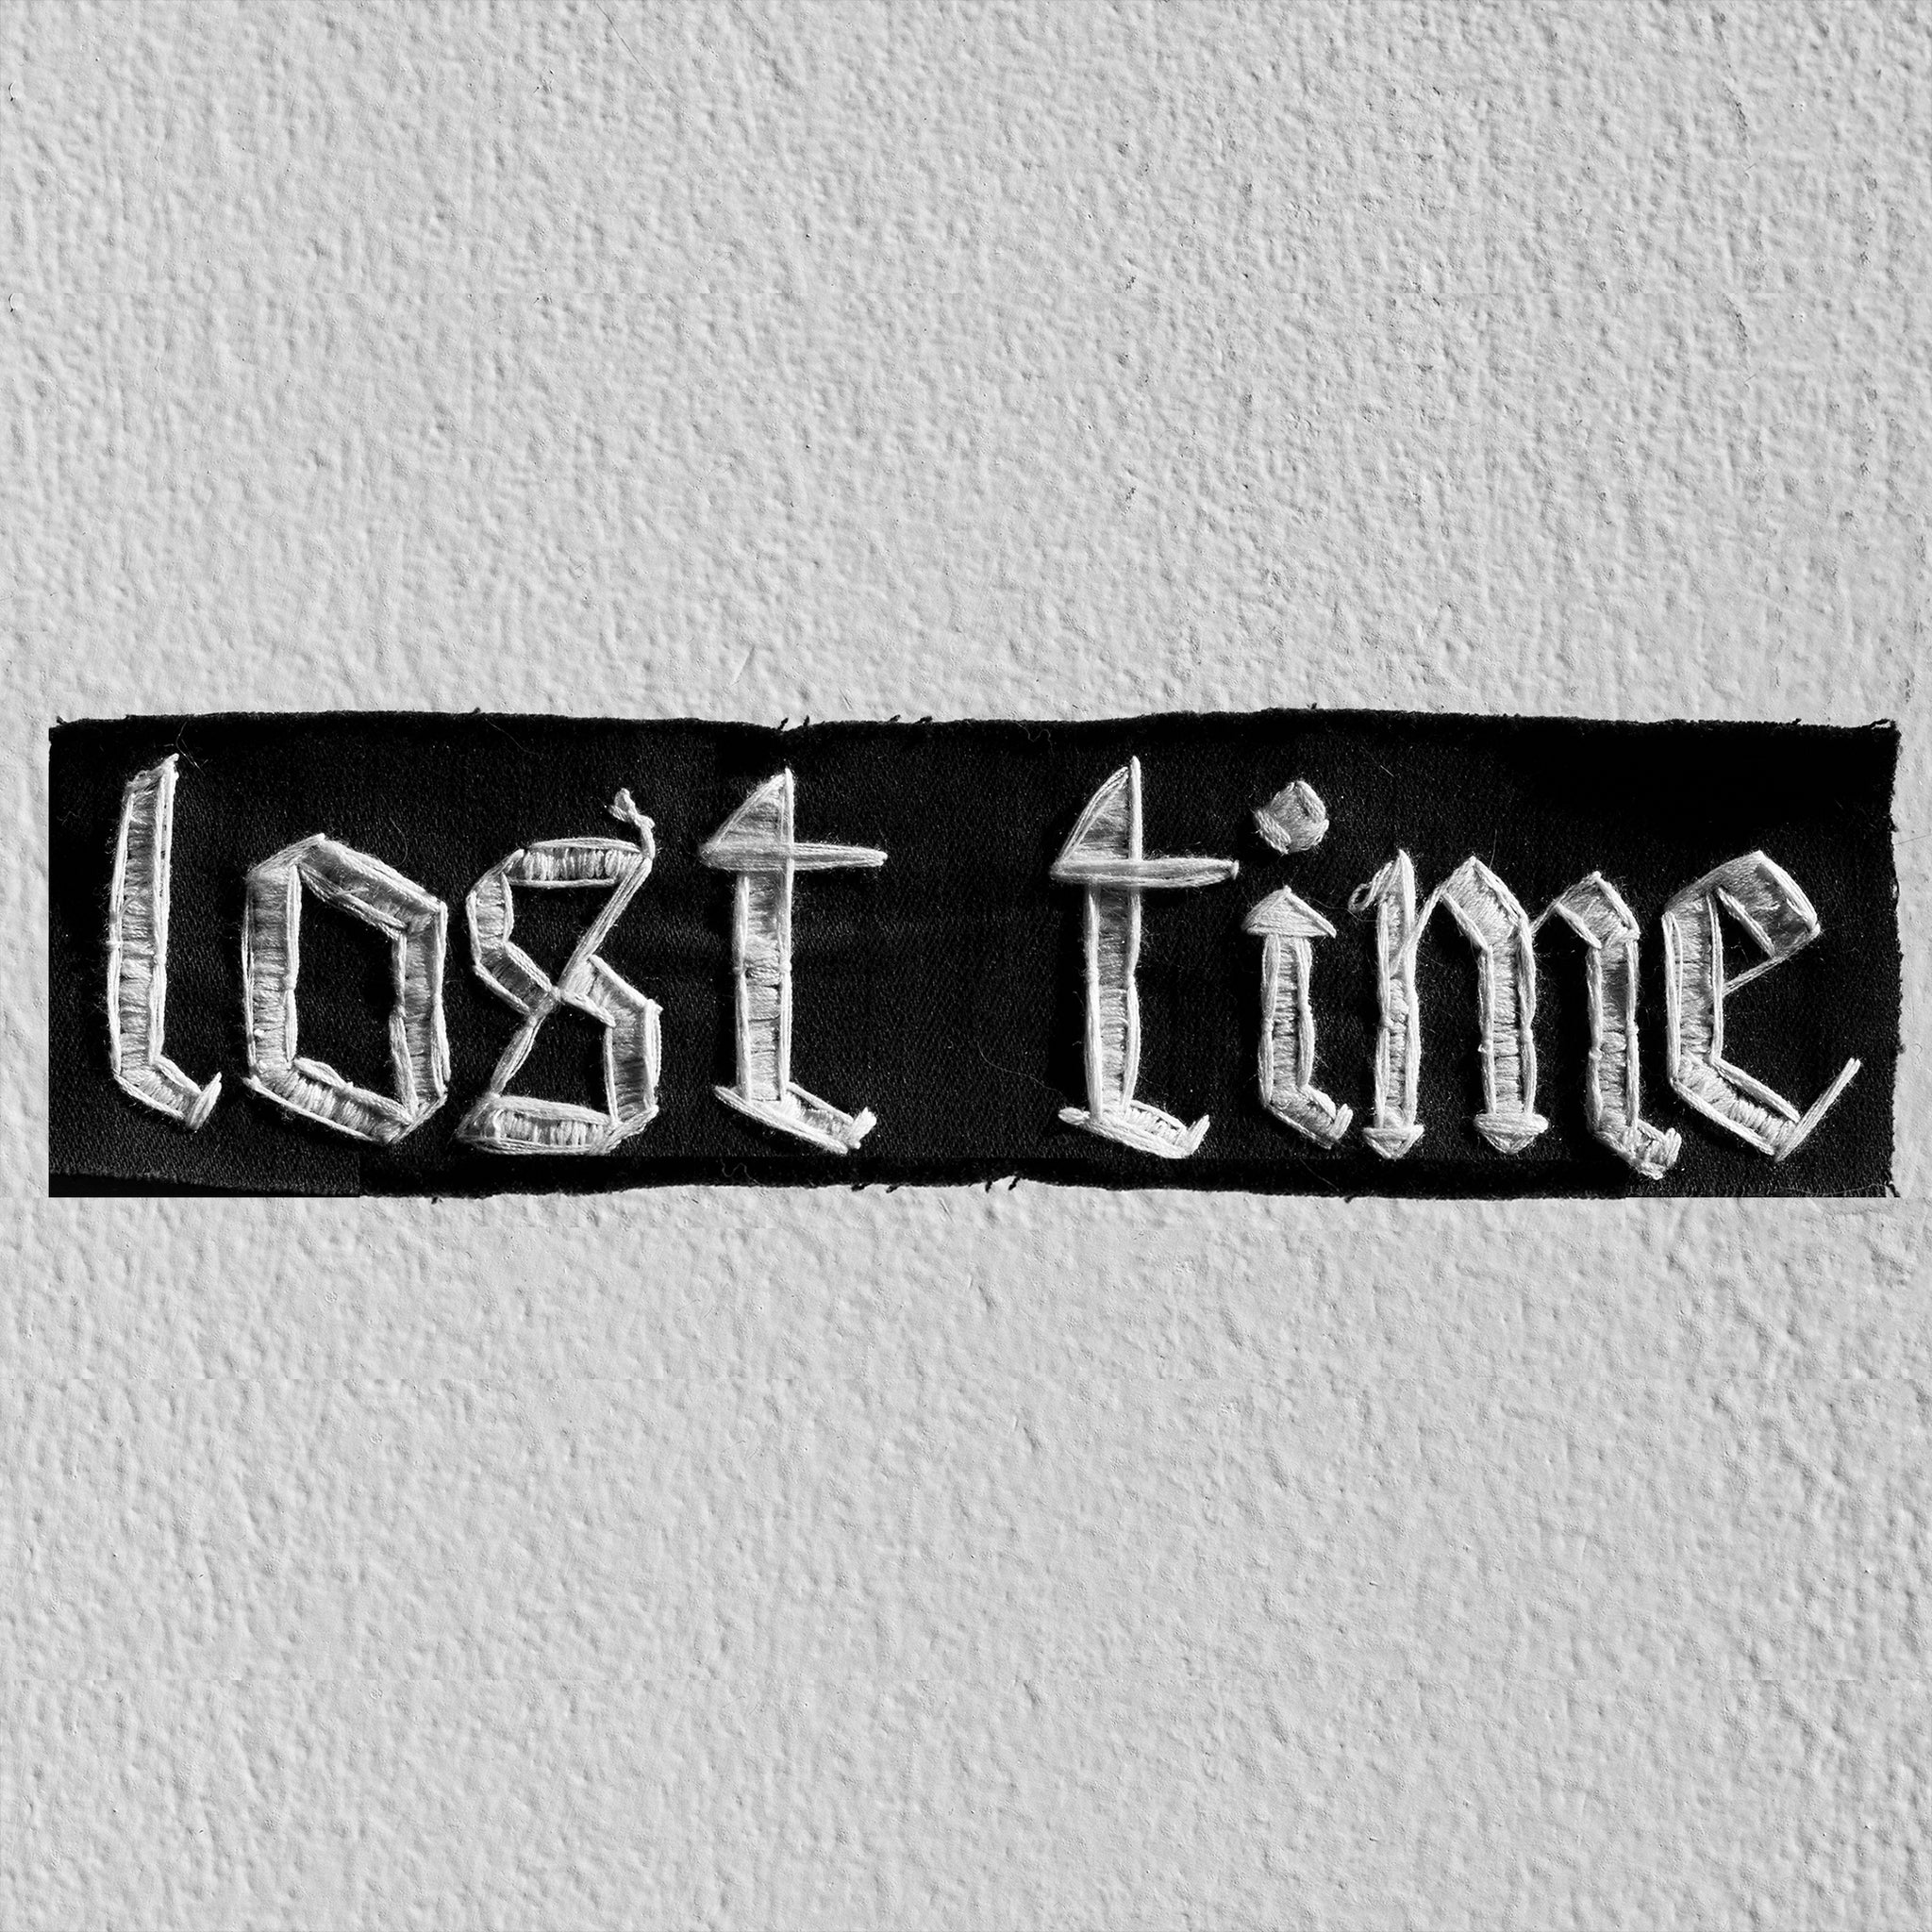 Time is (Relative) - Lost Time Patch